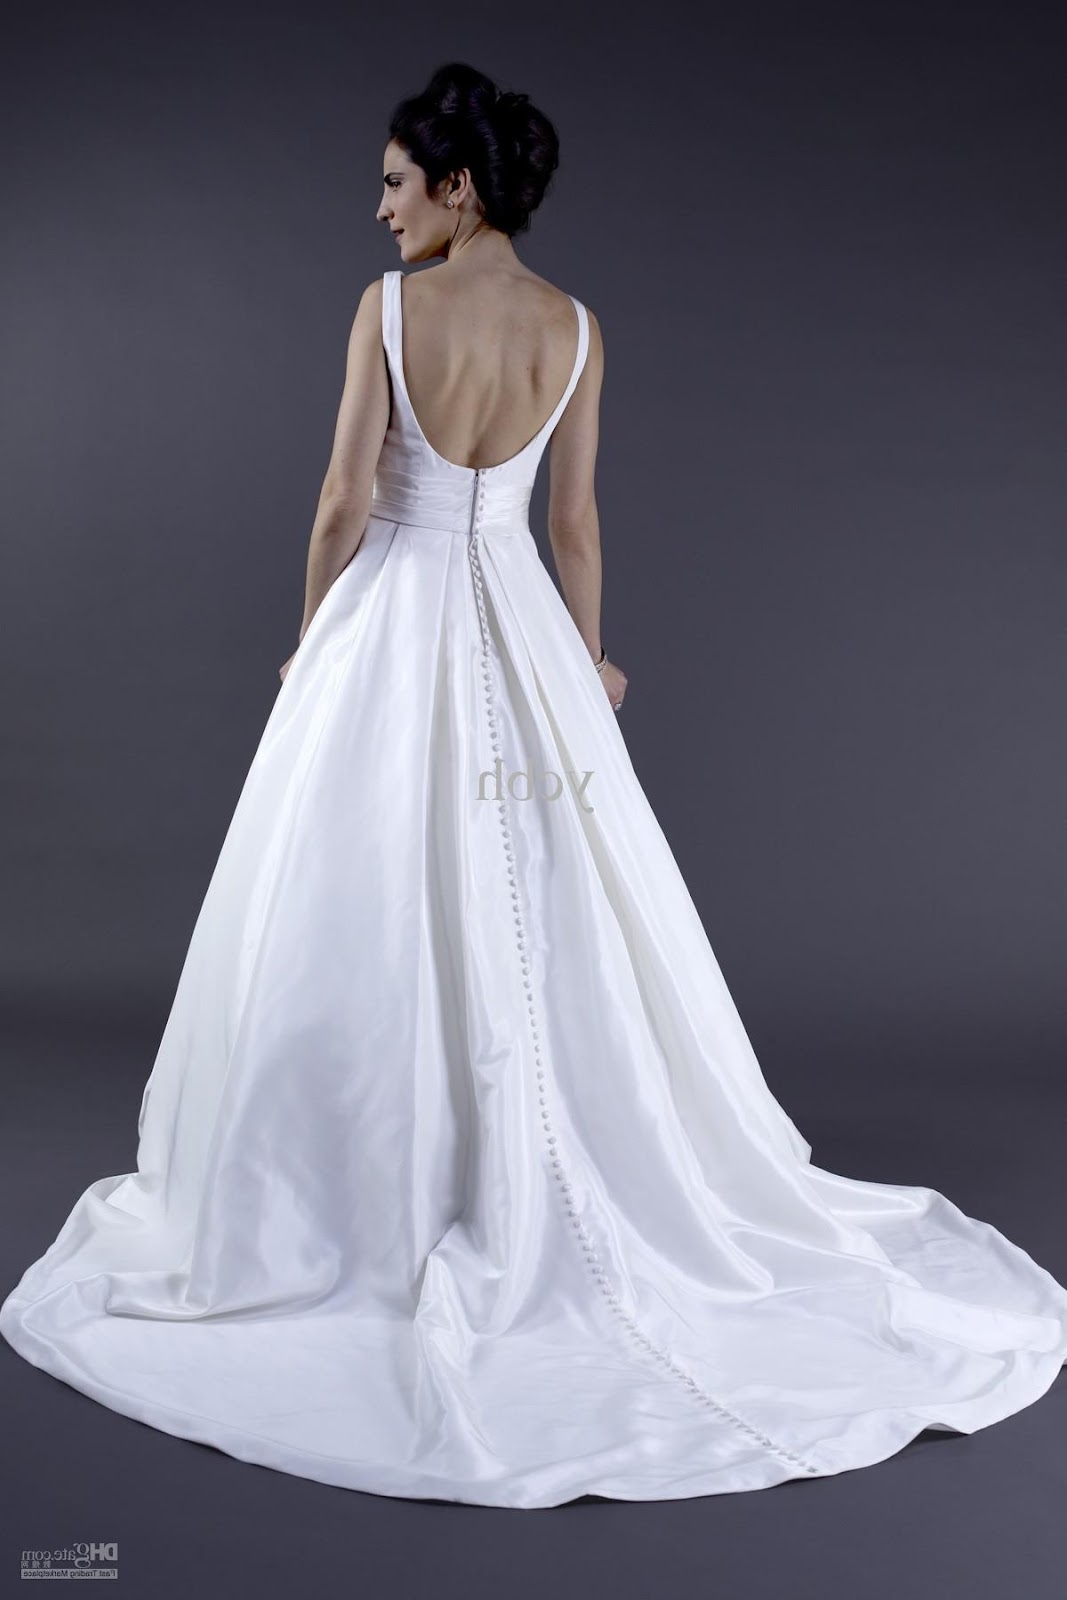 Wholesale - 2011 bateau neckline wedding dress with pockets and low scoop